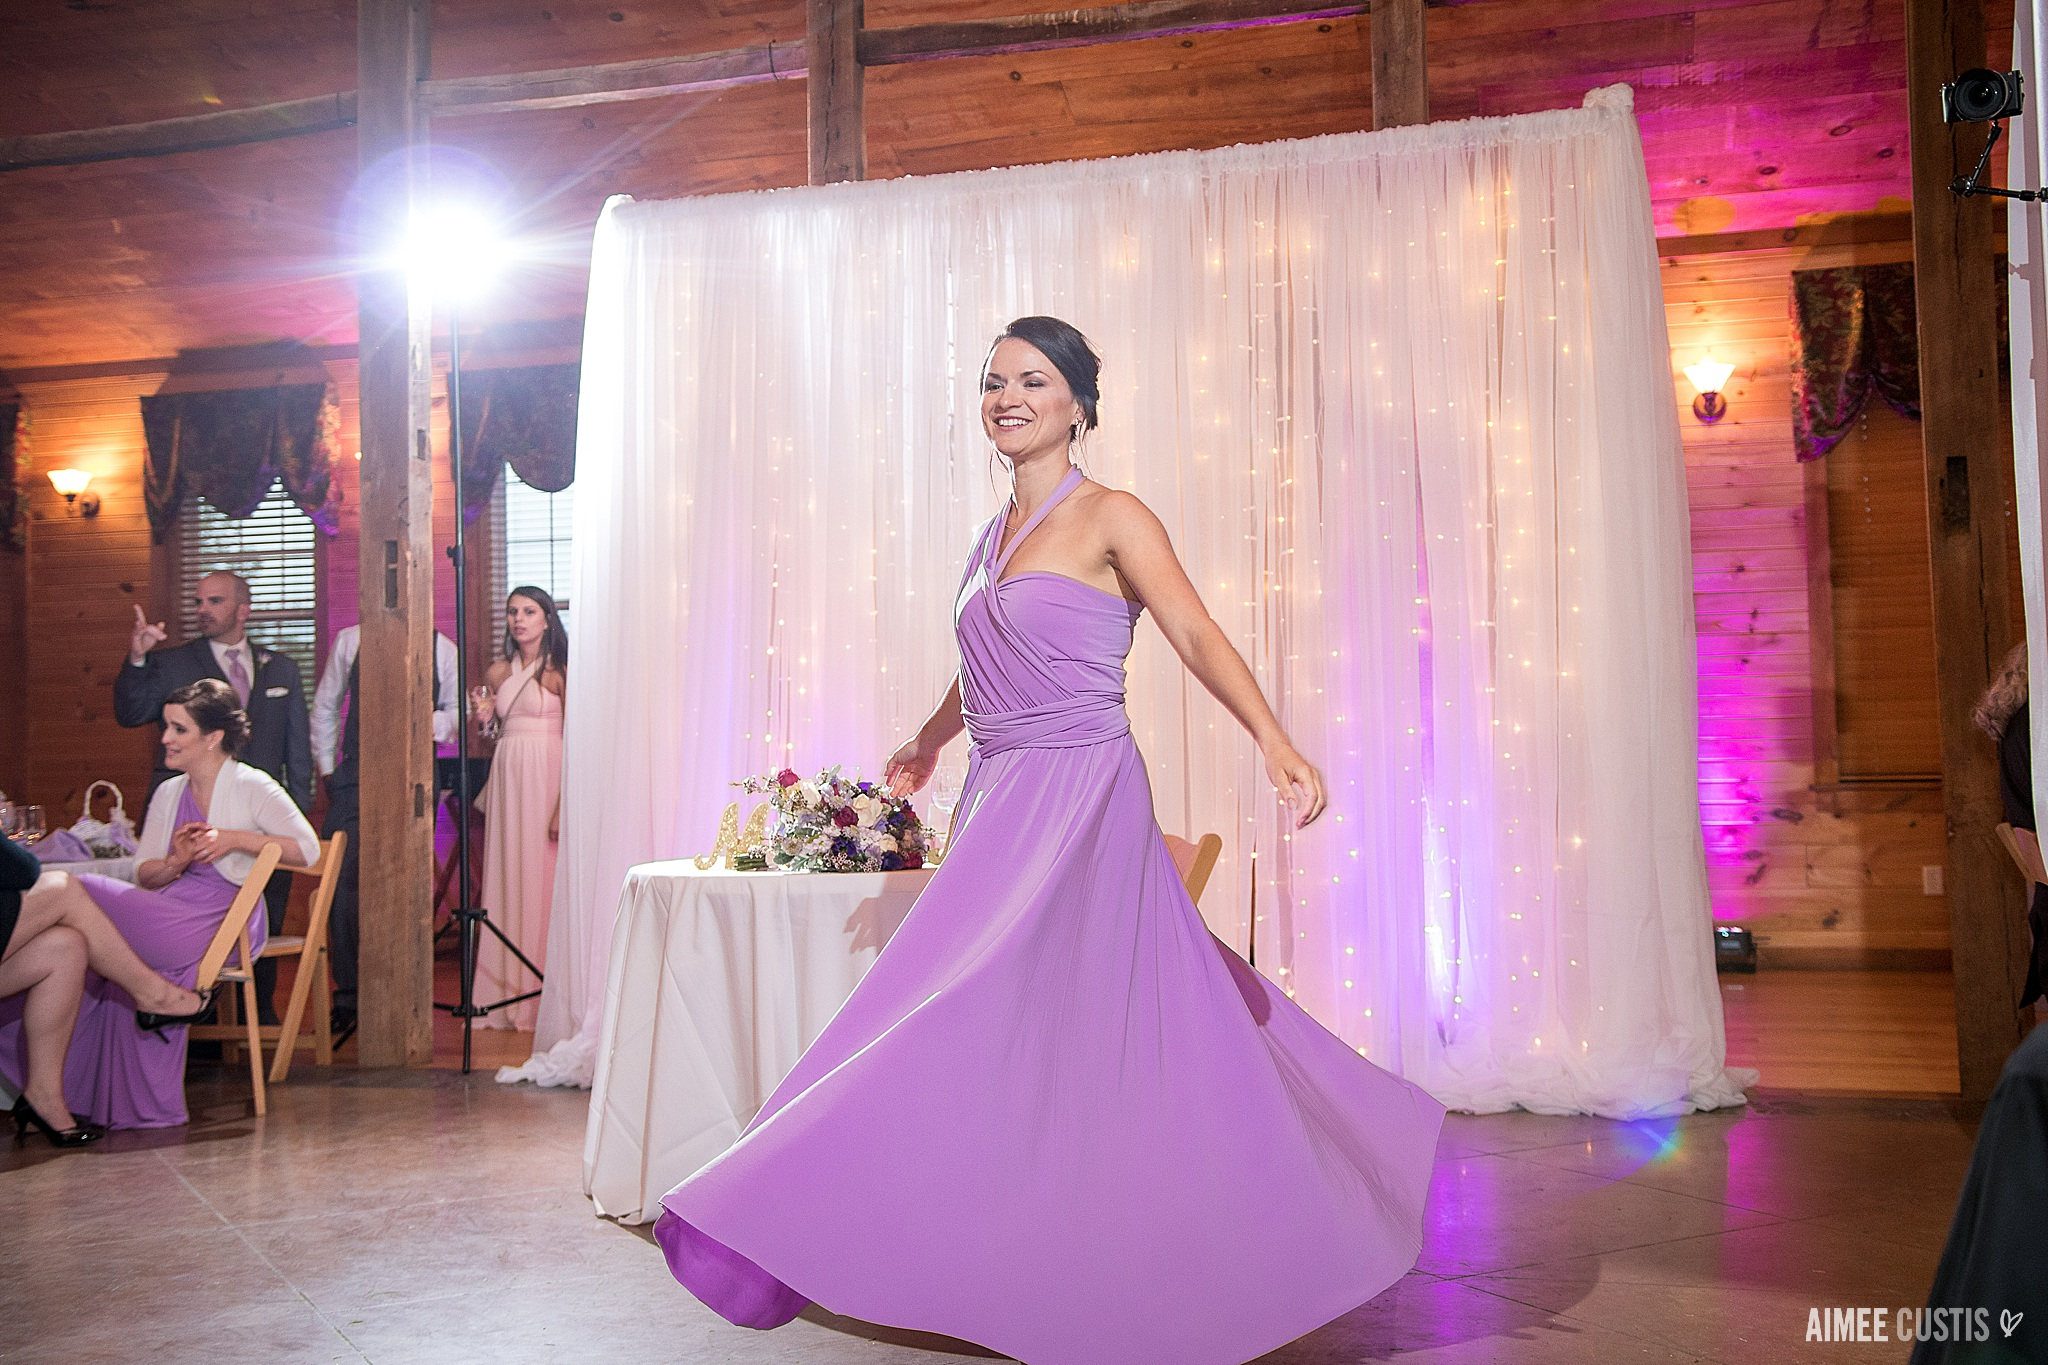 When your bridesmaid dress is this great for twirling? You twirl!